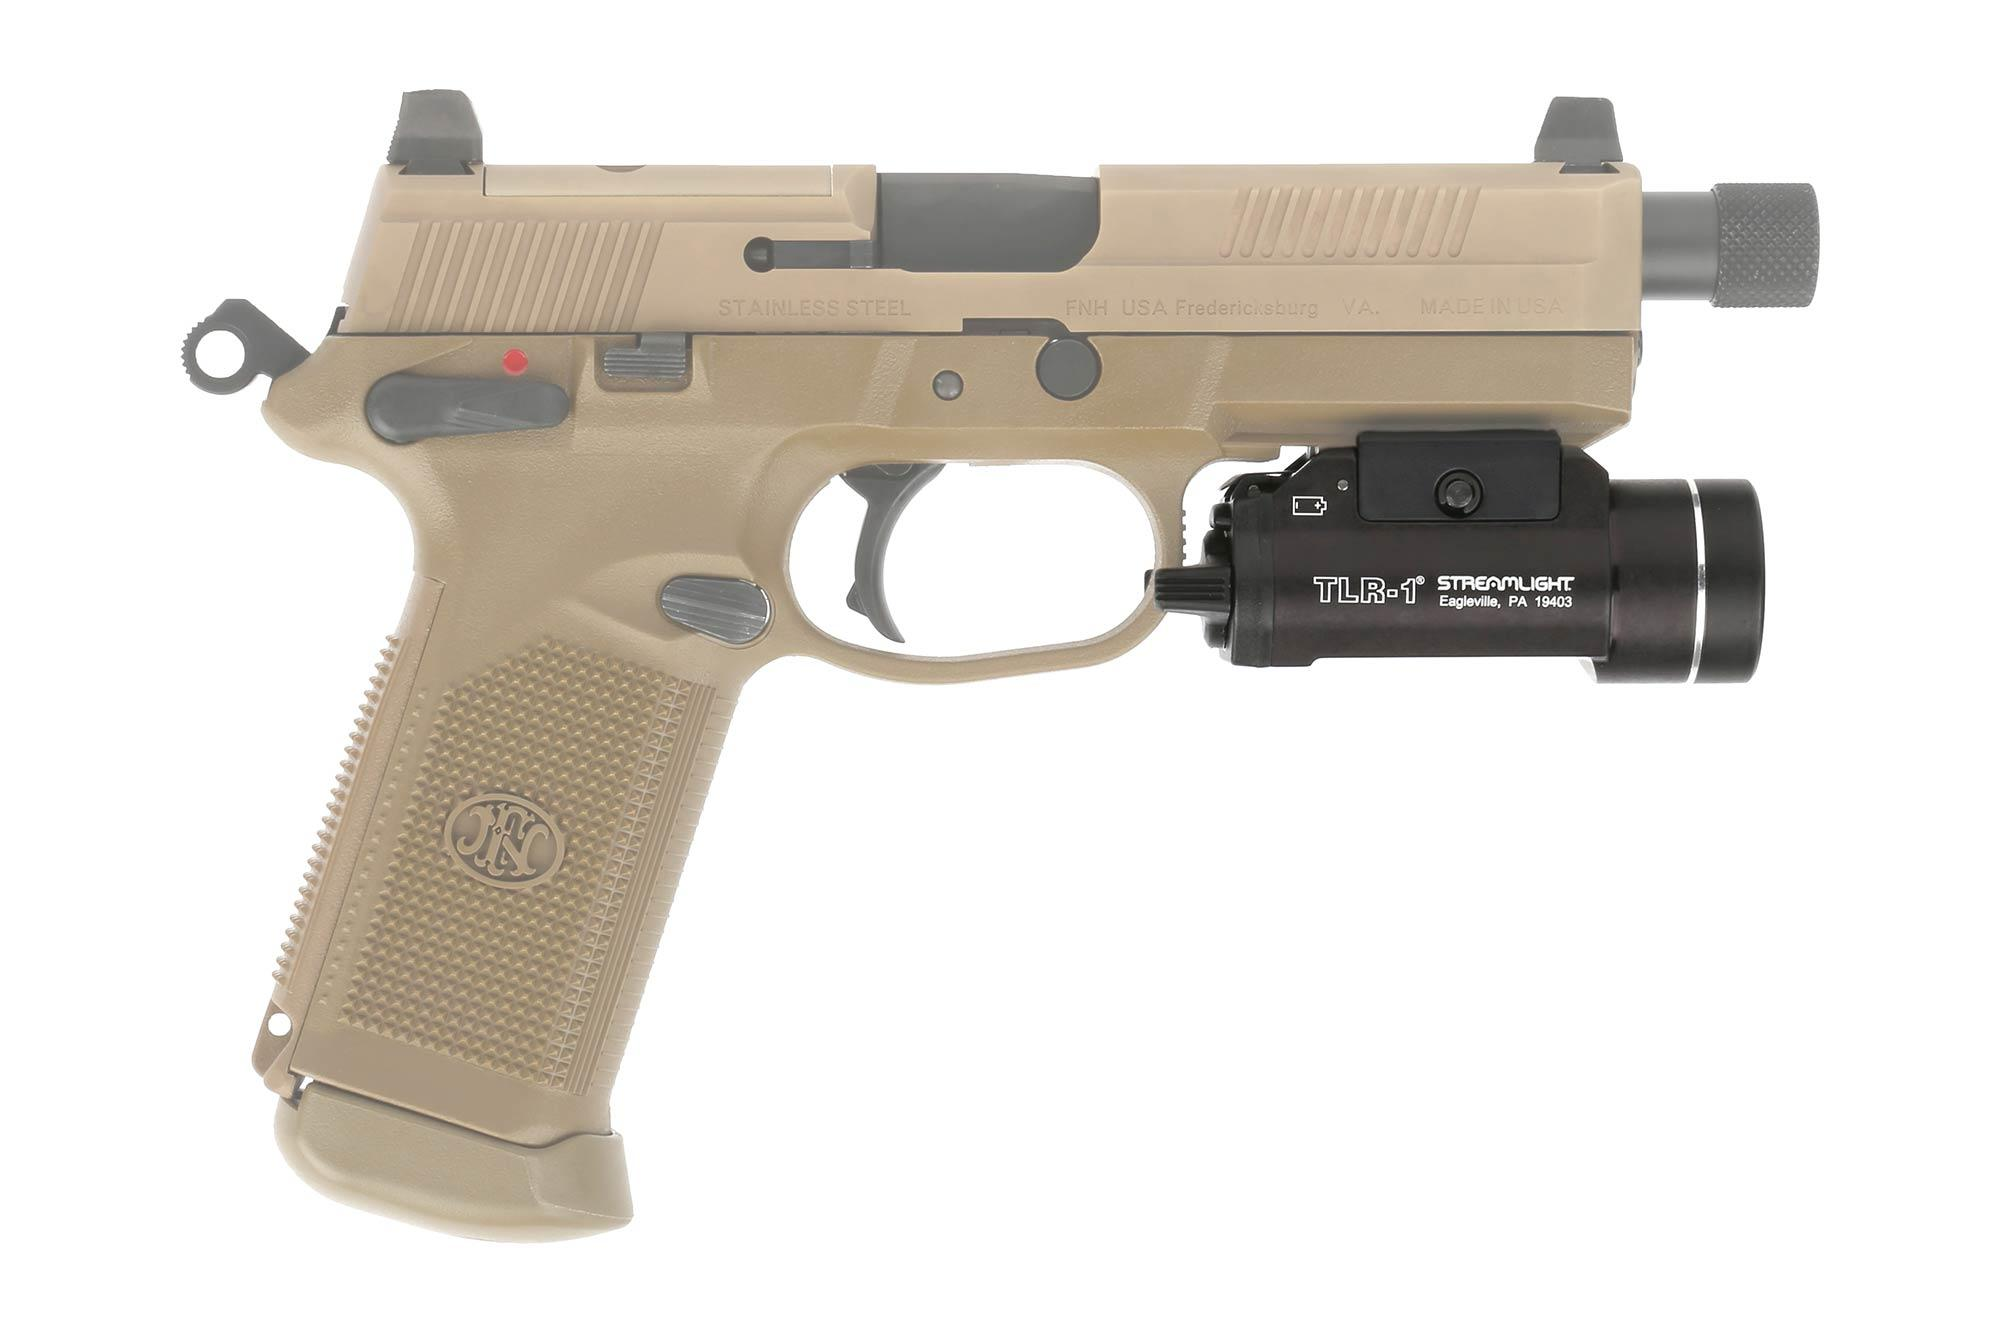 Streamlight TLR-1 300 Lumen Tactical Weapon Light